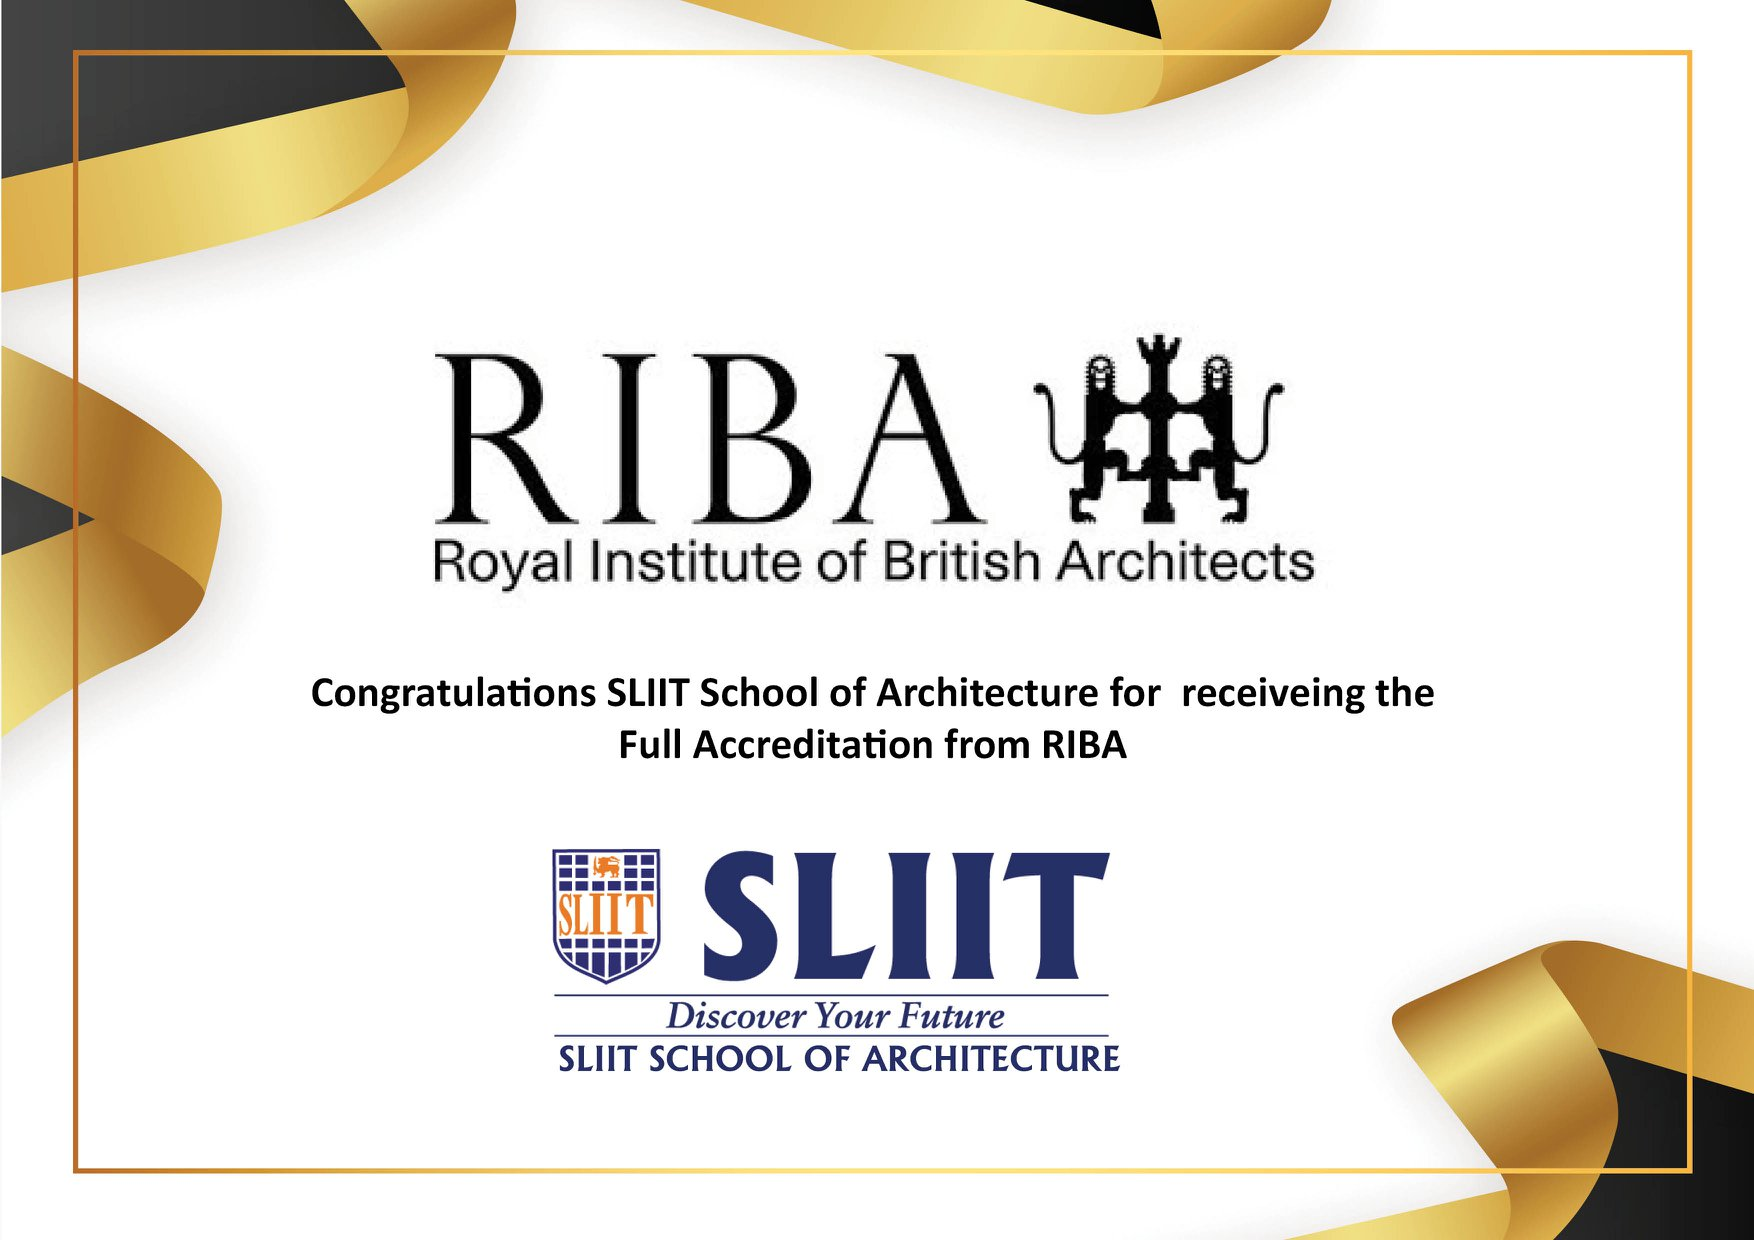 SLIIT School of Architecture received RIBA Validation from the Royal Institute of British Architects (RIBA)